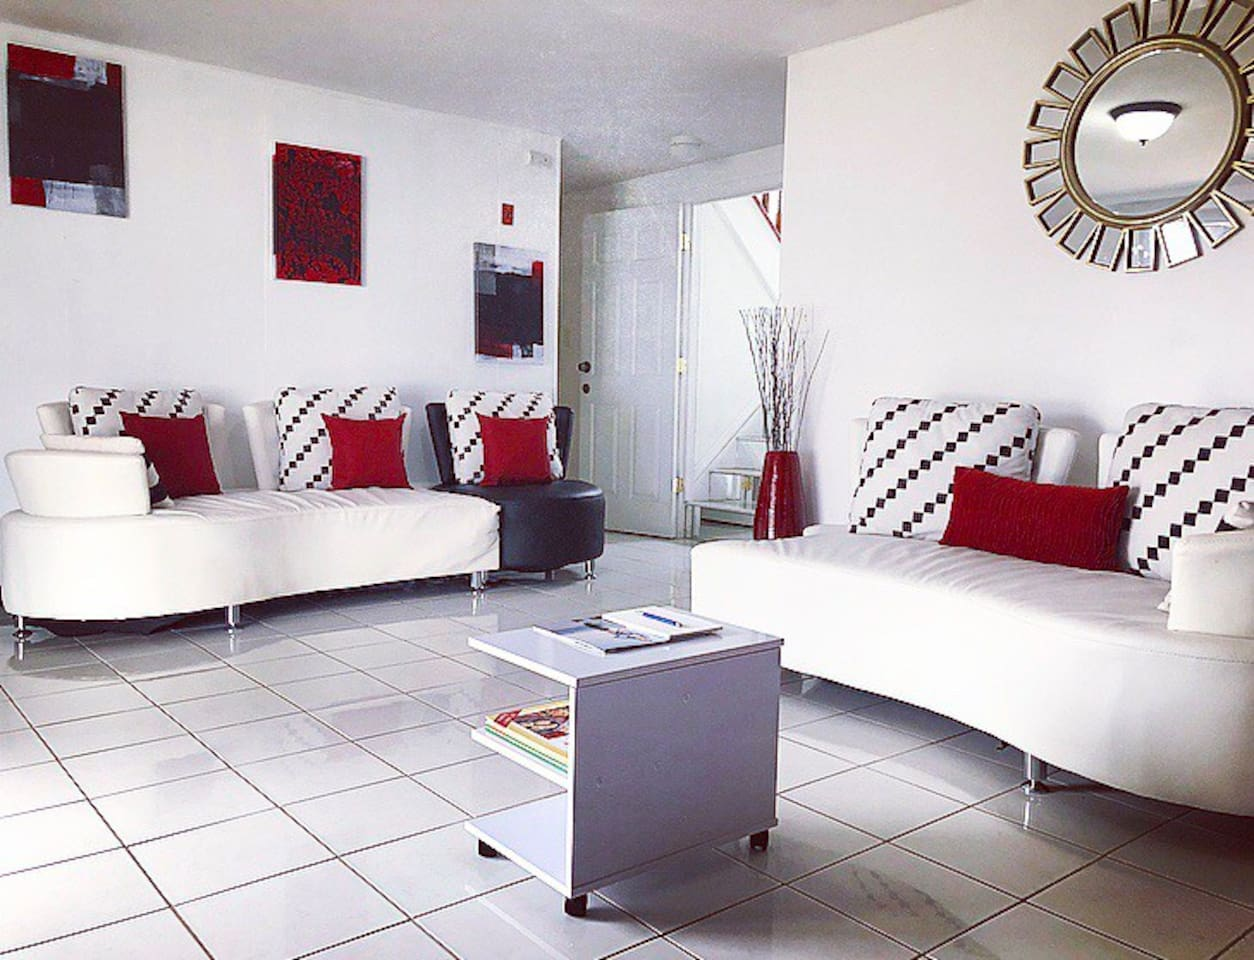 Living room designed with white leather swivel couches and Donna Karen pillows, ceramic tiles